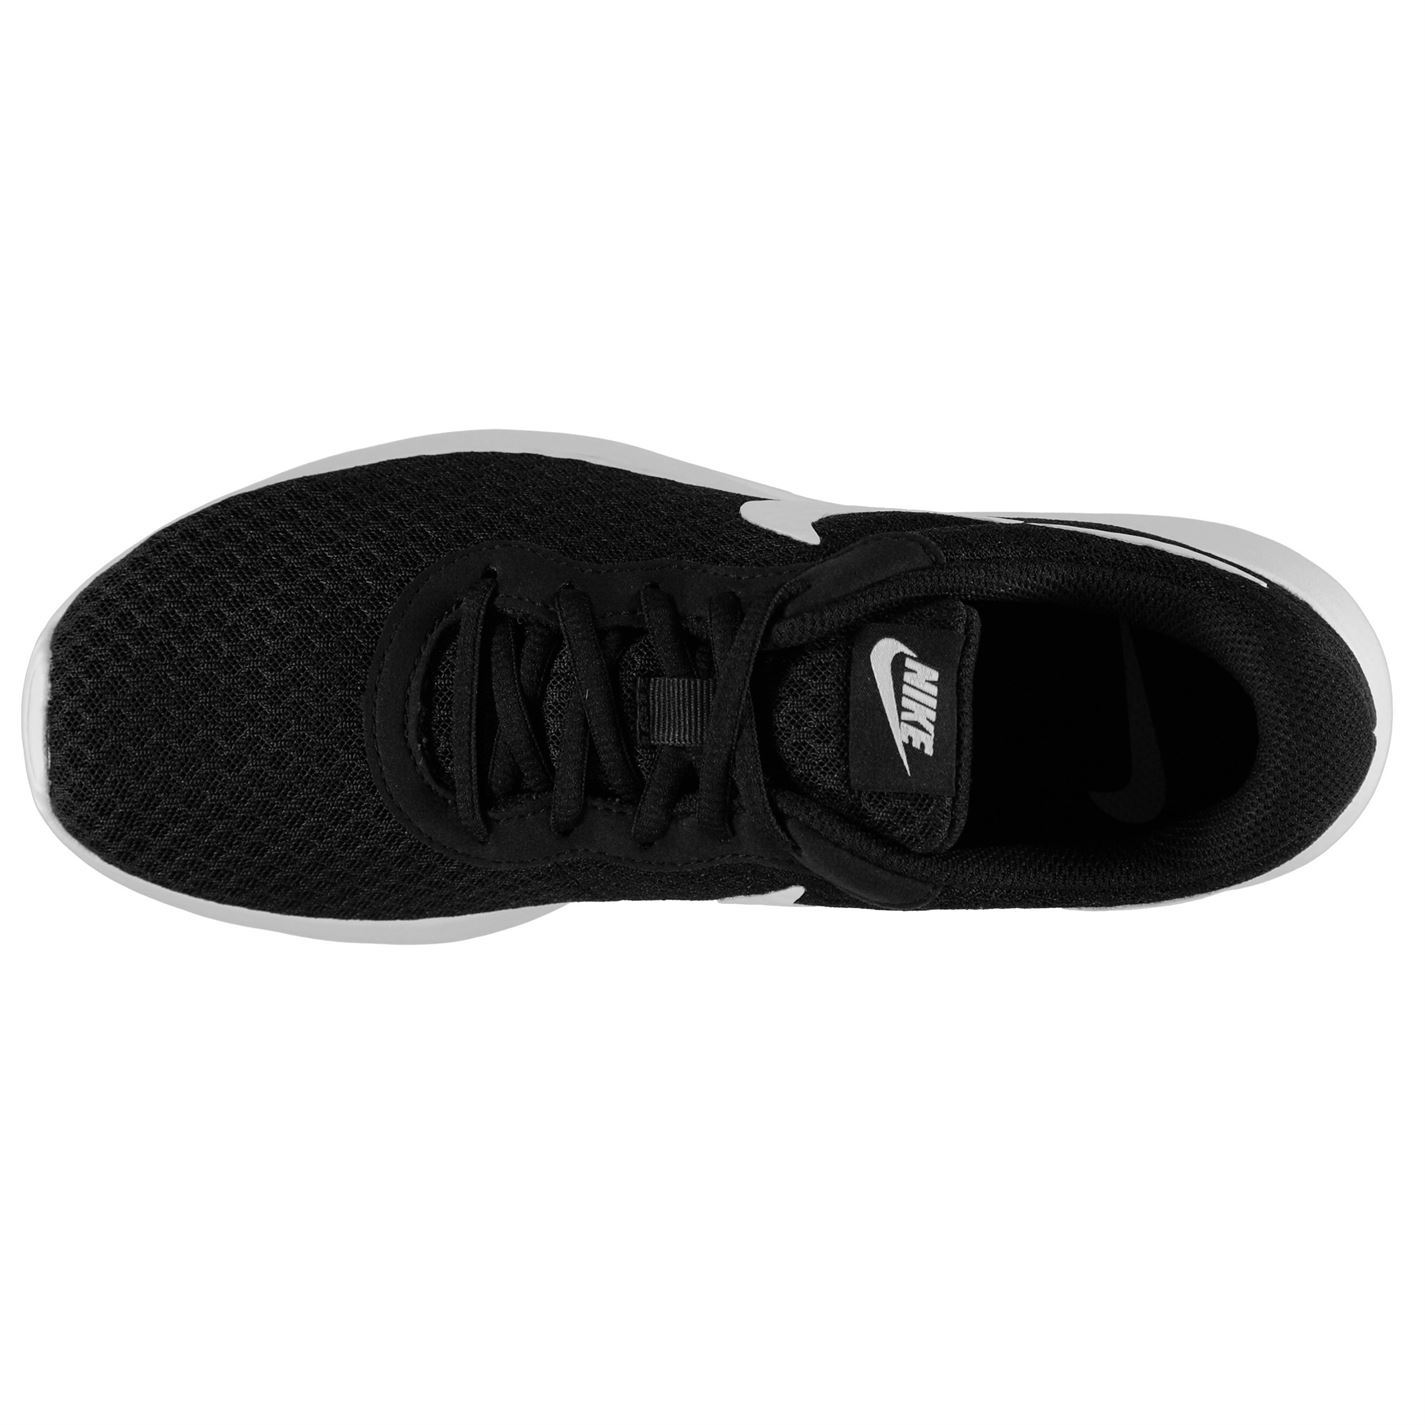 e94f56433ed ... Nike Tanjun Training Shoes Womens Black White Gym Fitness Trainers  Sneakers ...